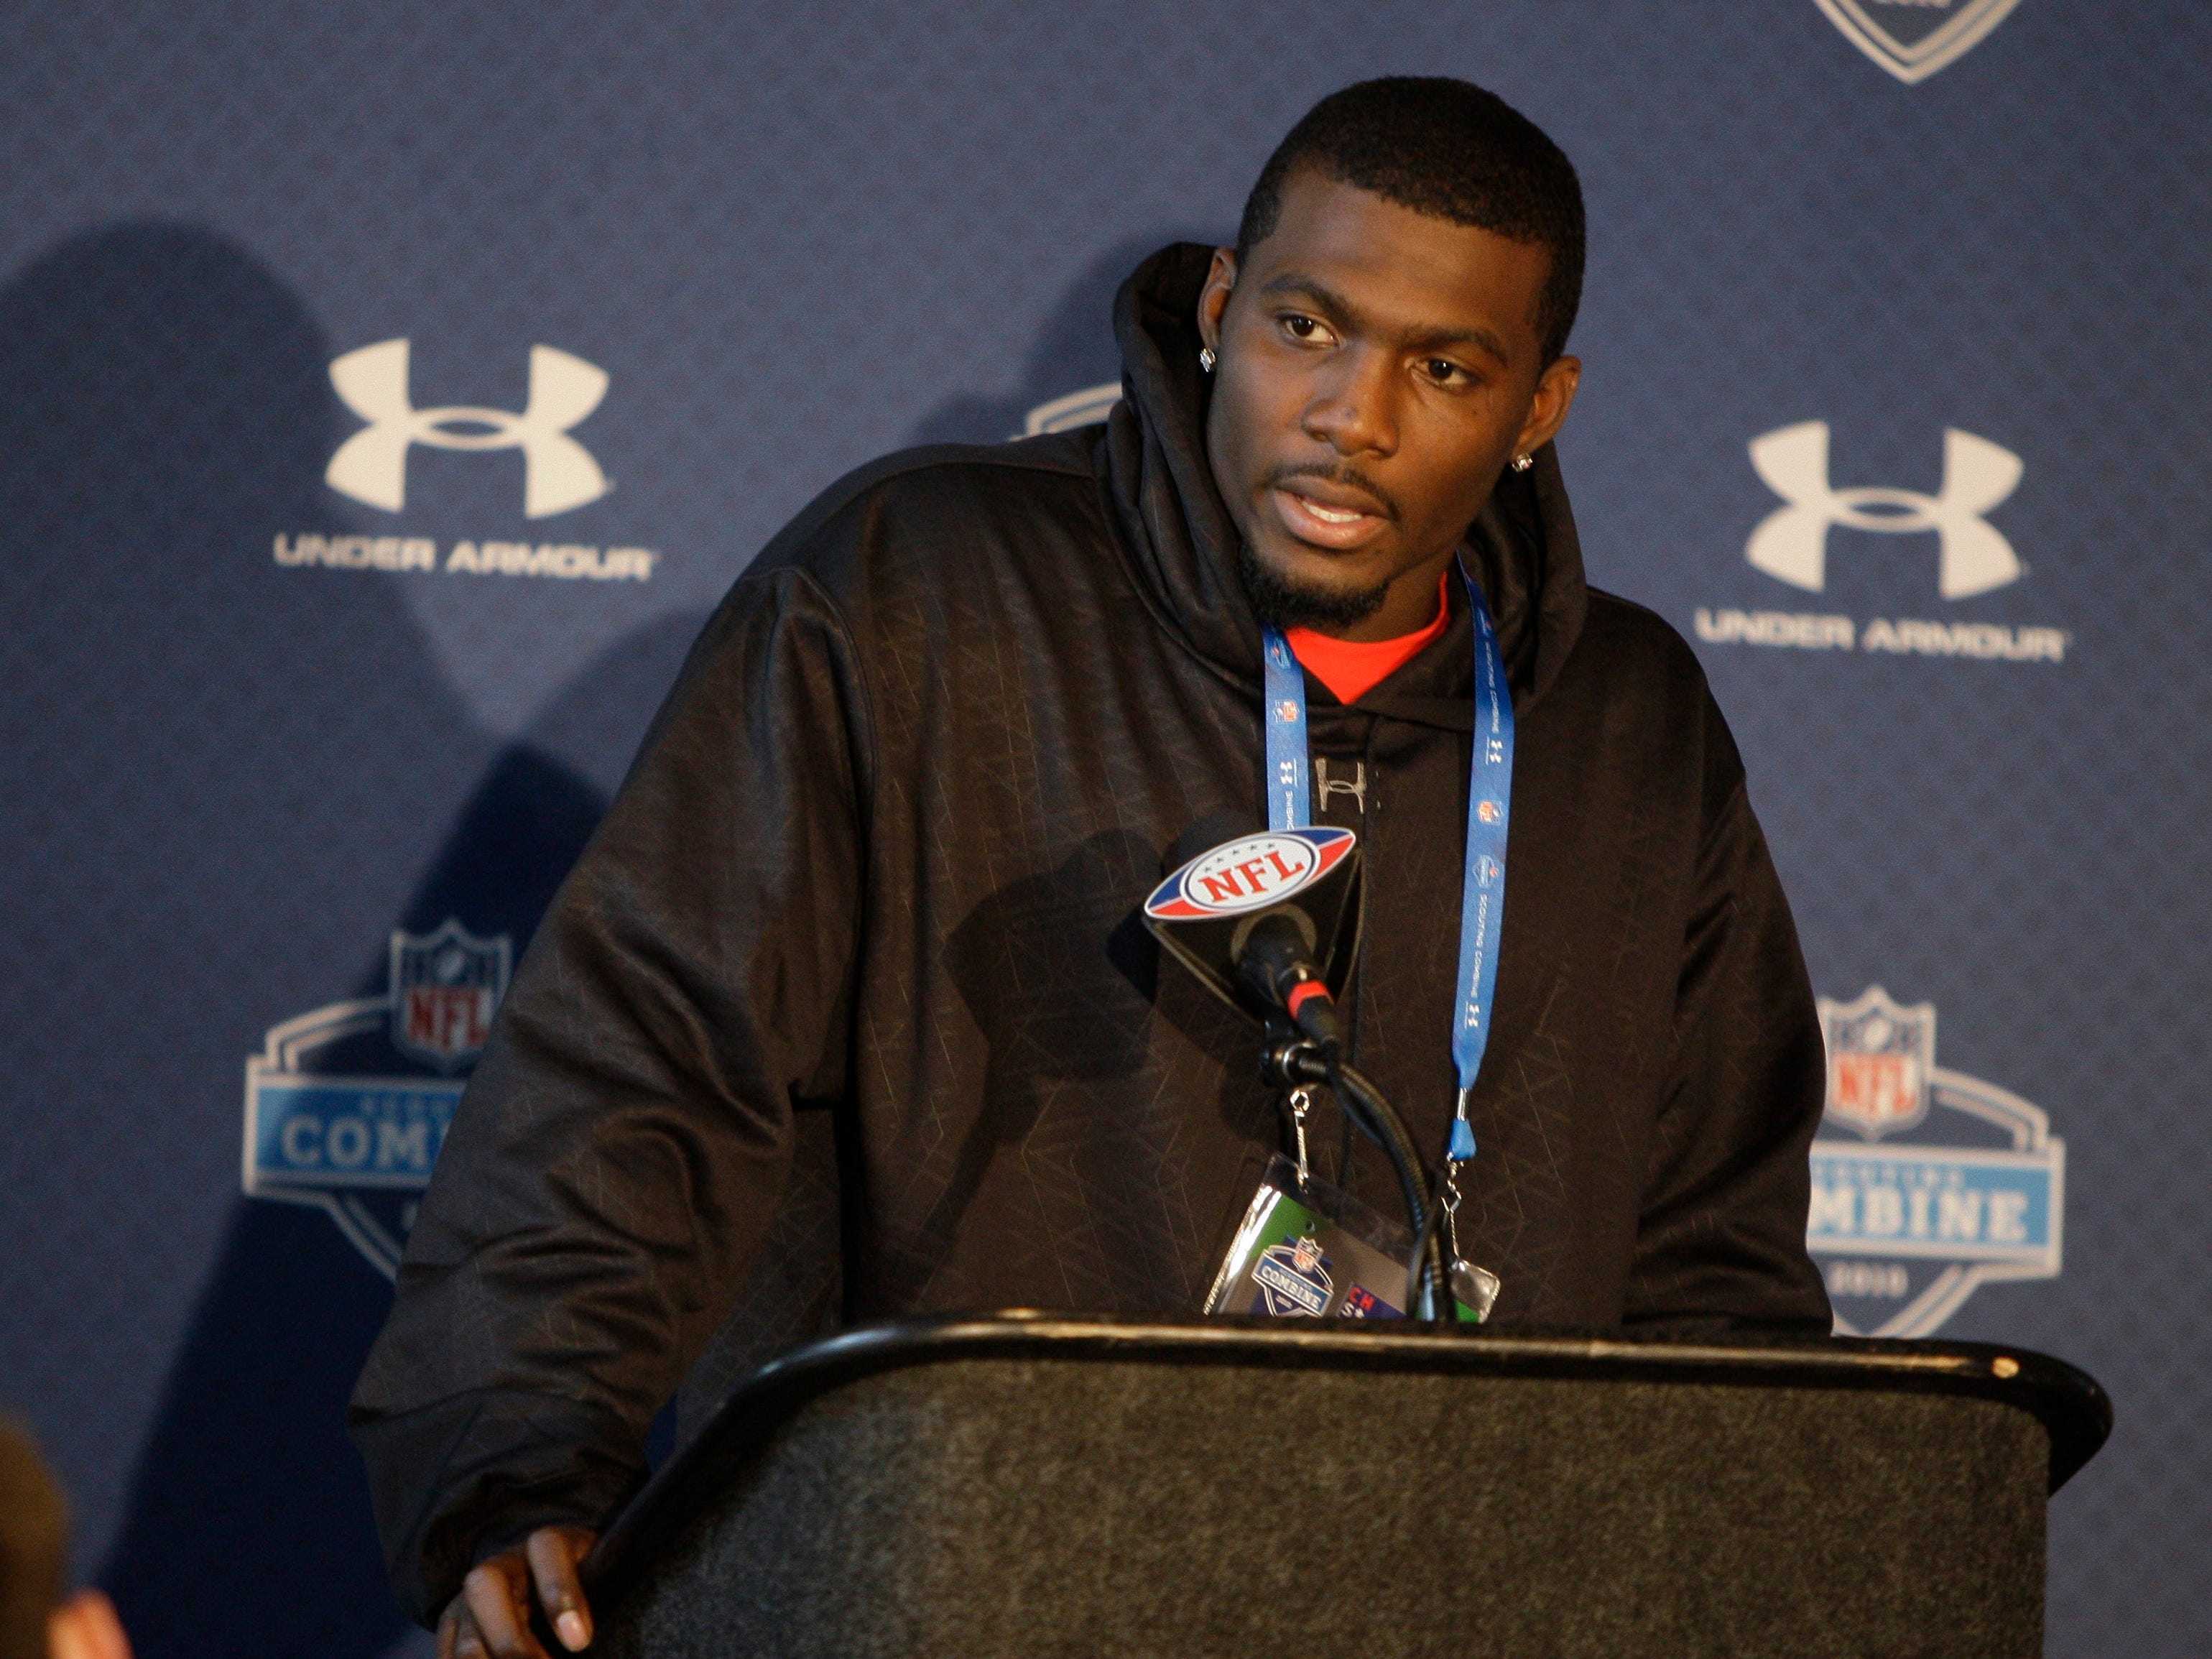 Dez Bryant listens to a question during a press conference at the NFL Scouting Combine in Indianapolis in 2010.